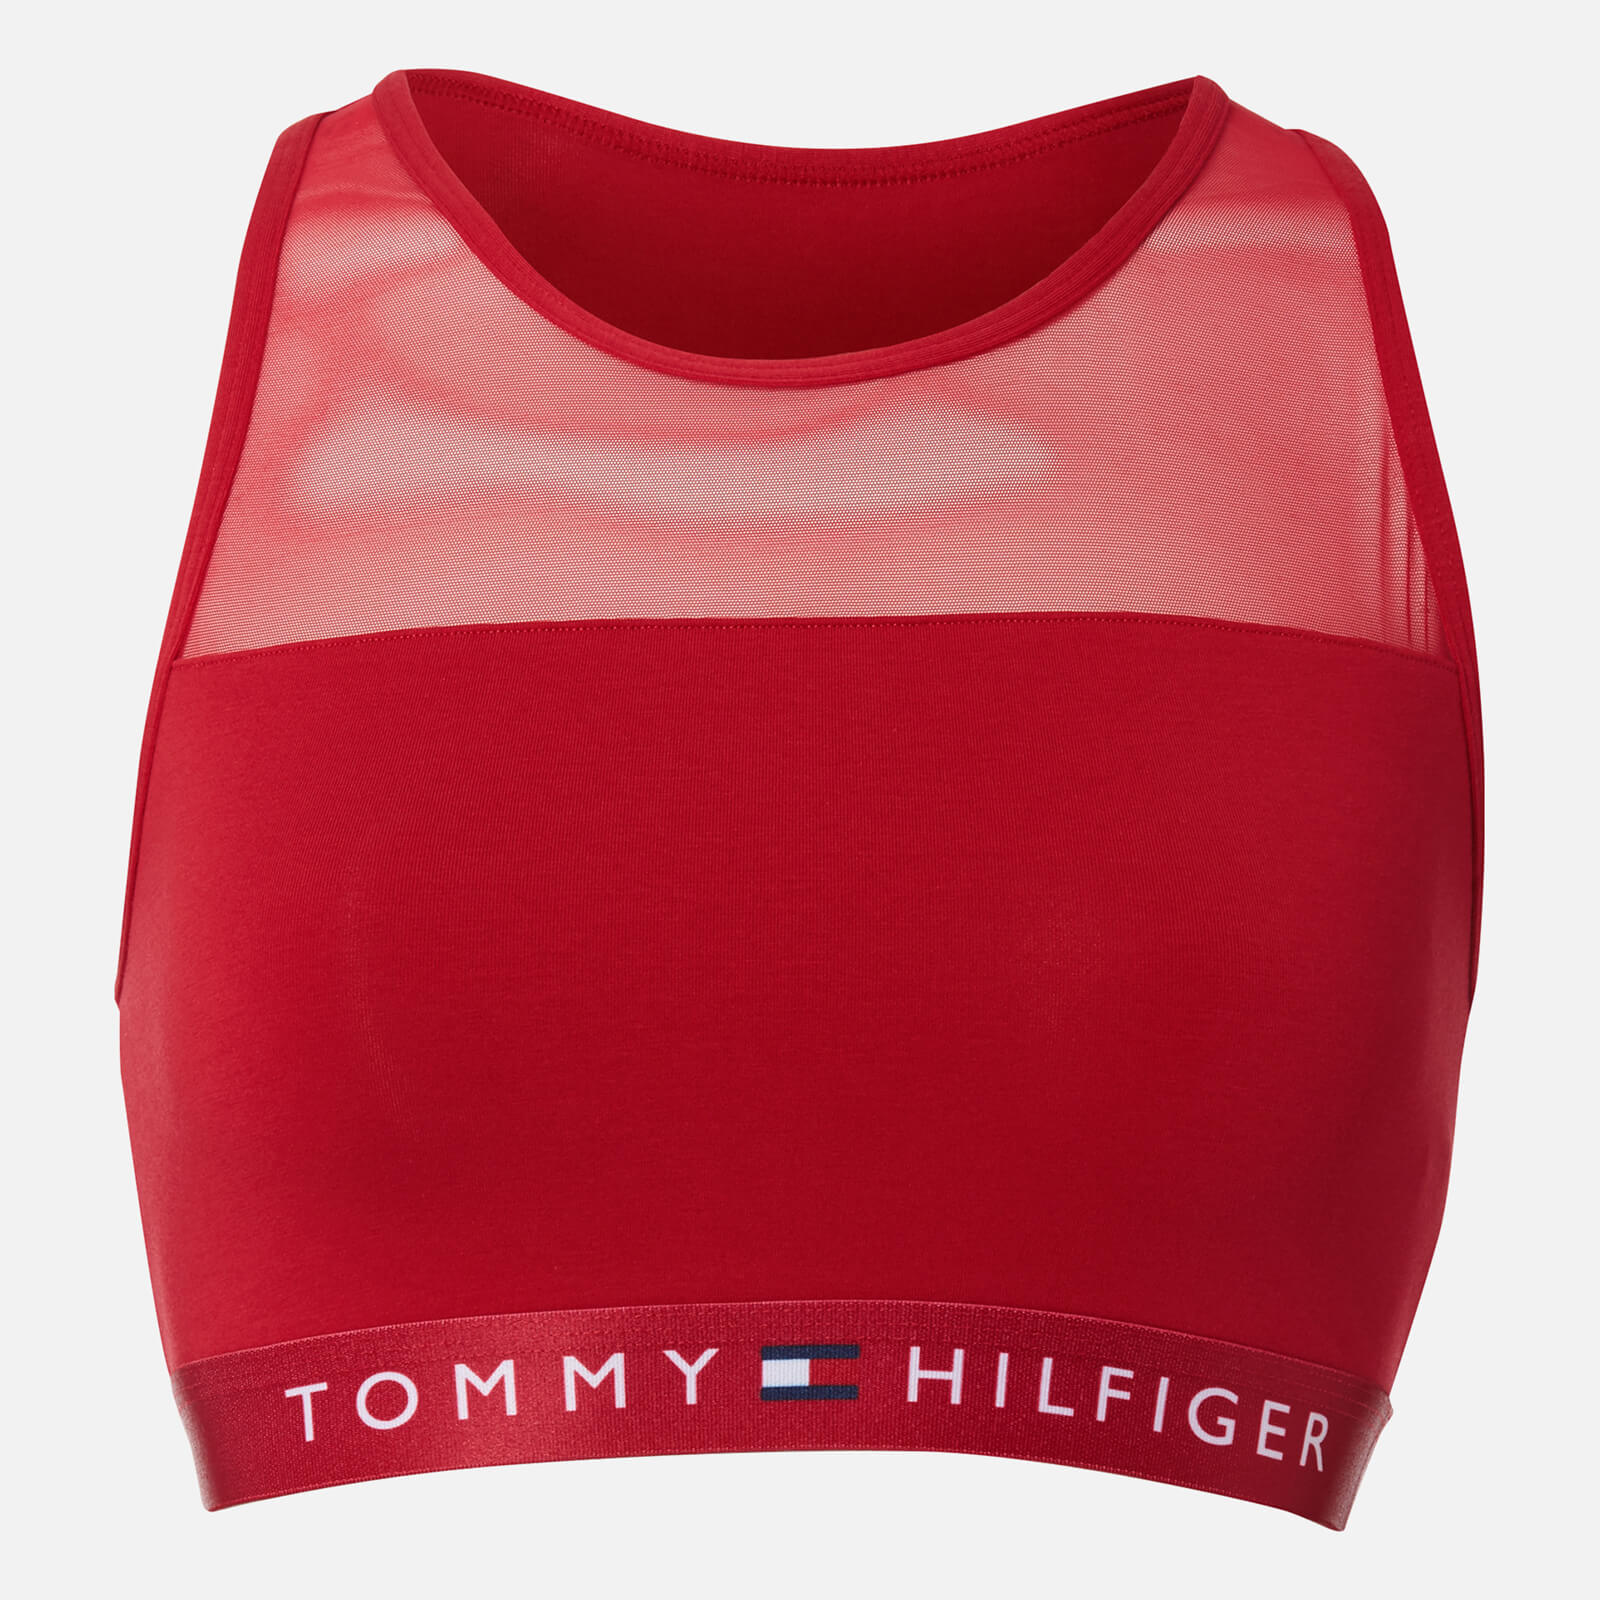 7fc0d8dc608ad Tommy Hilfiger Women s Bralette - Scooter Clothing